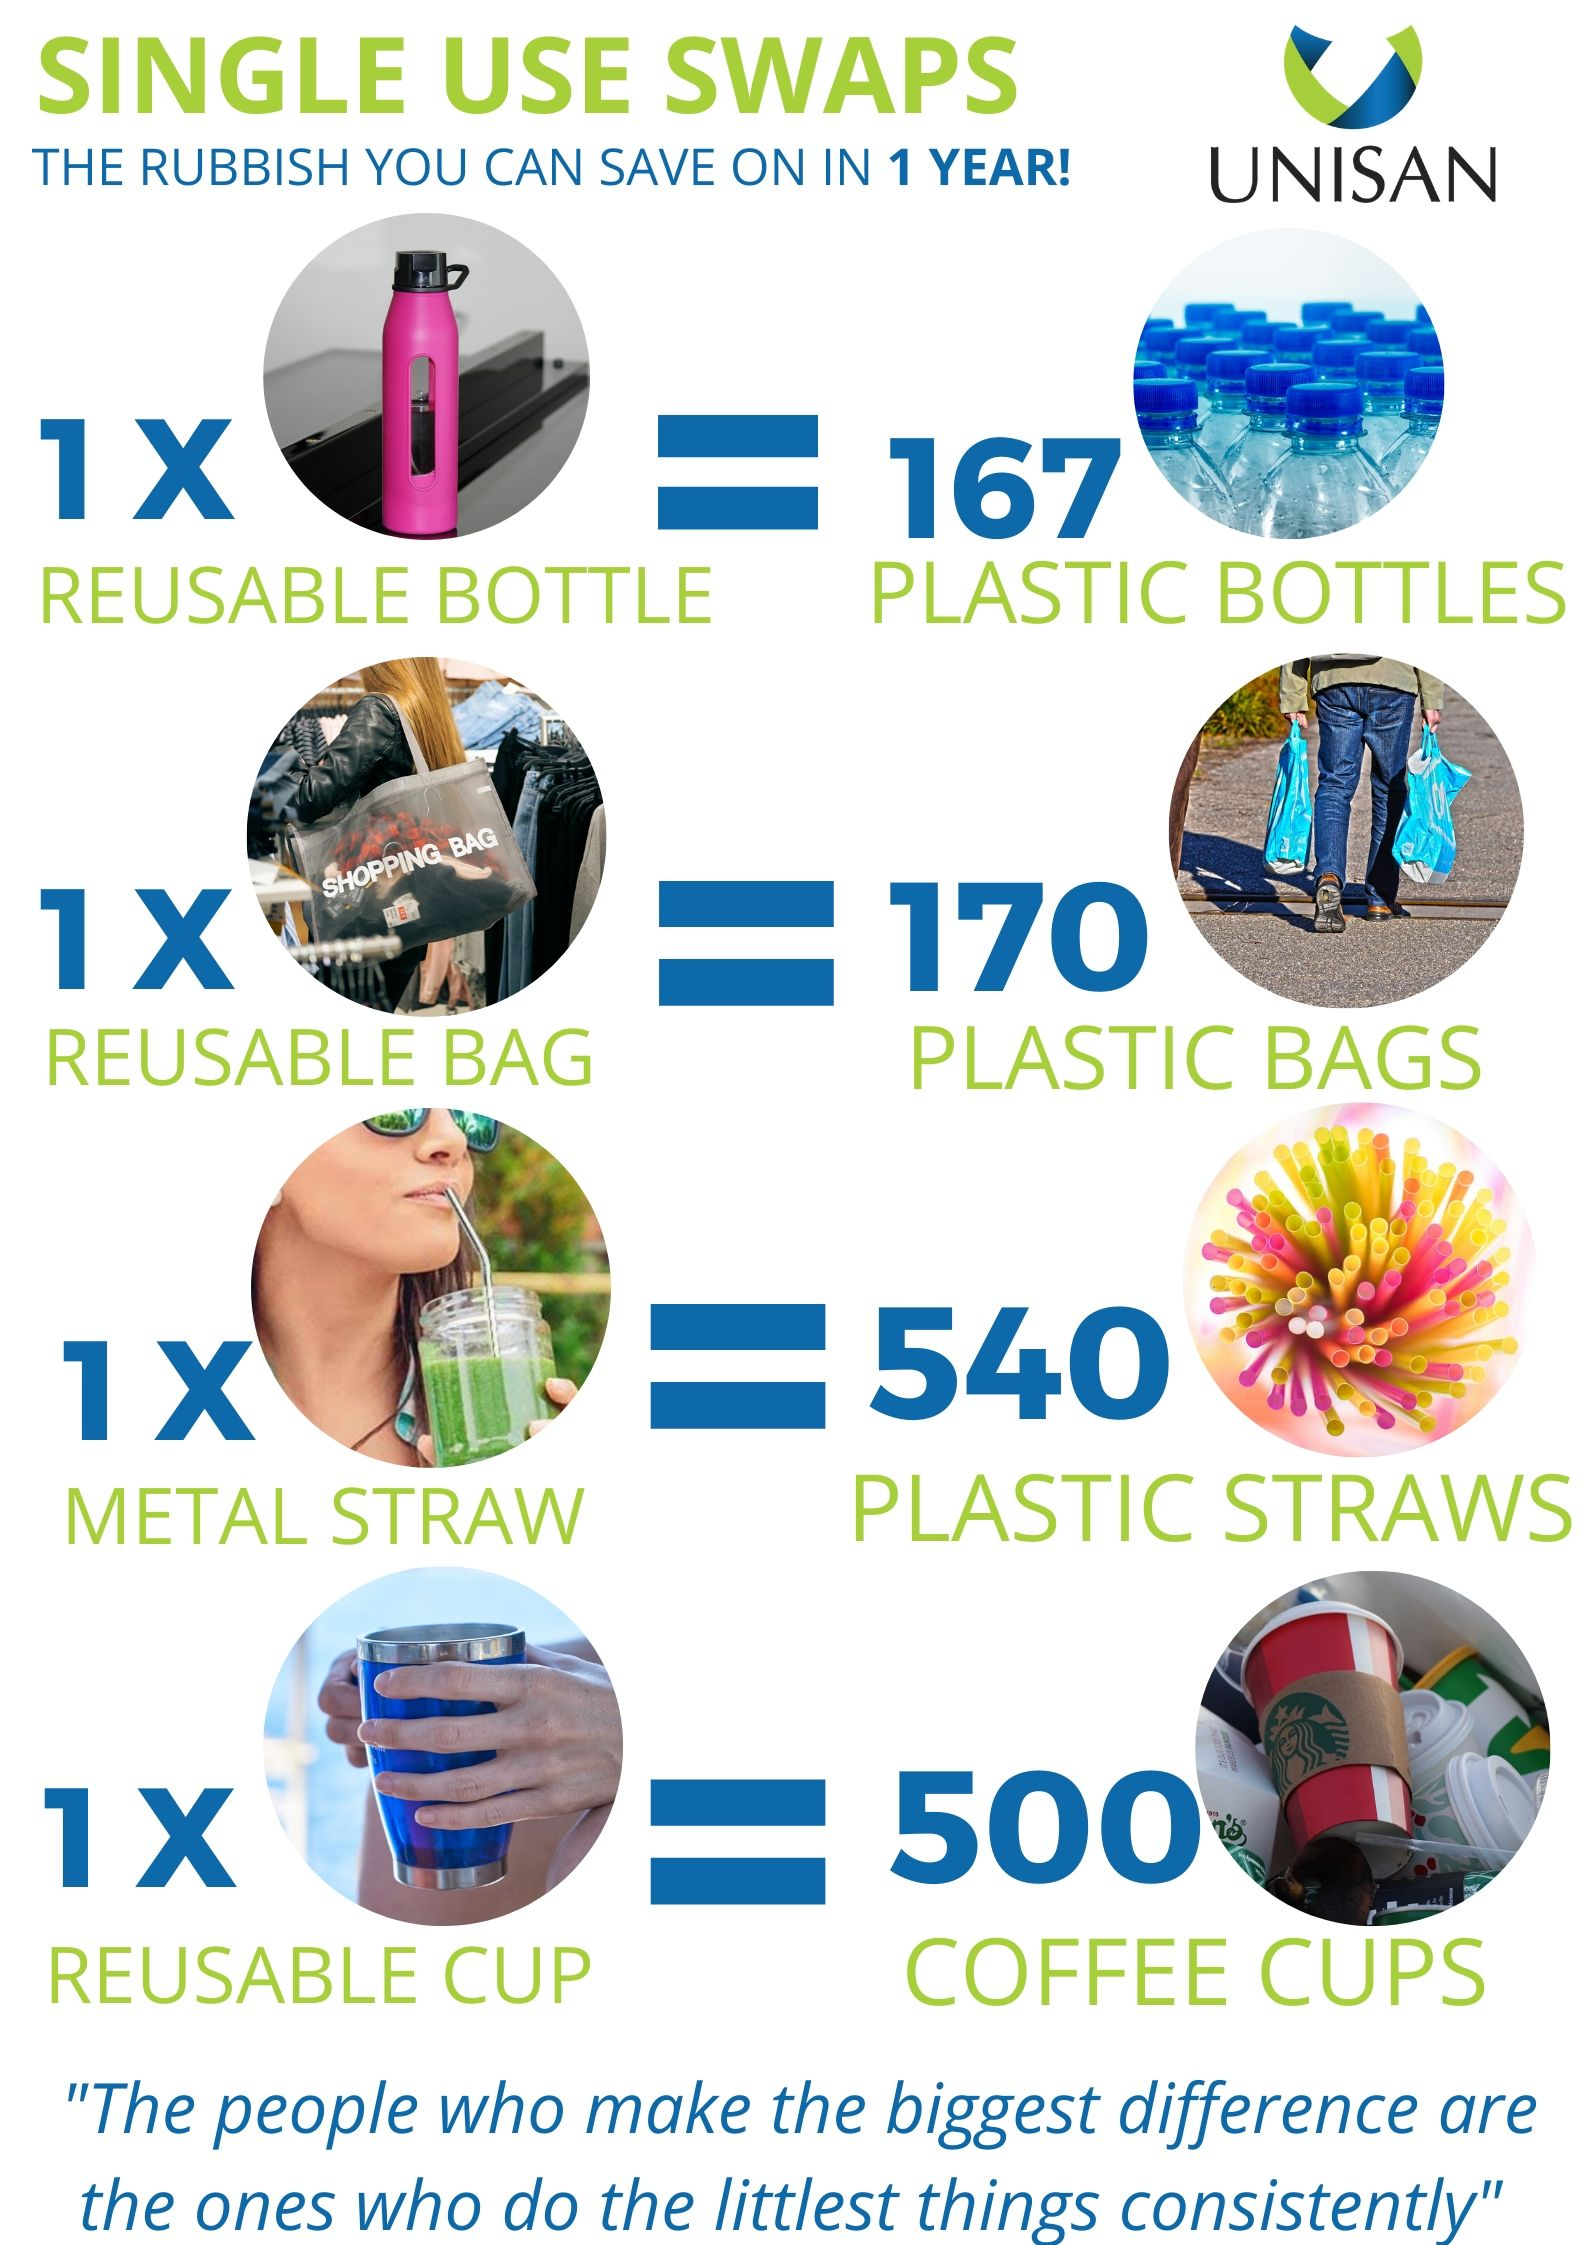 single use swaps for a zero waste lifestyle at home or at work